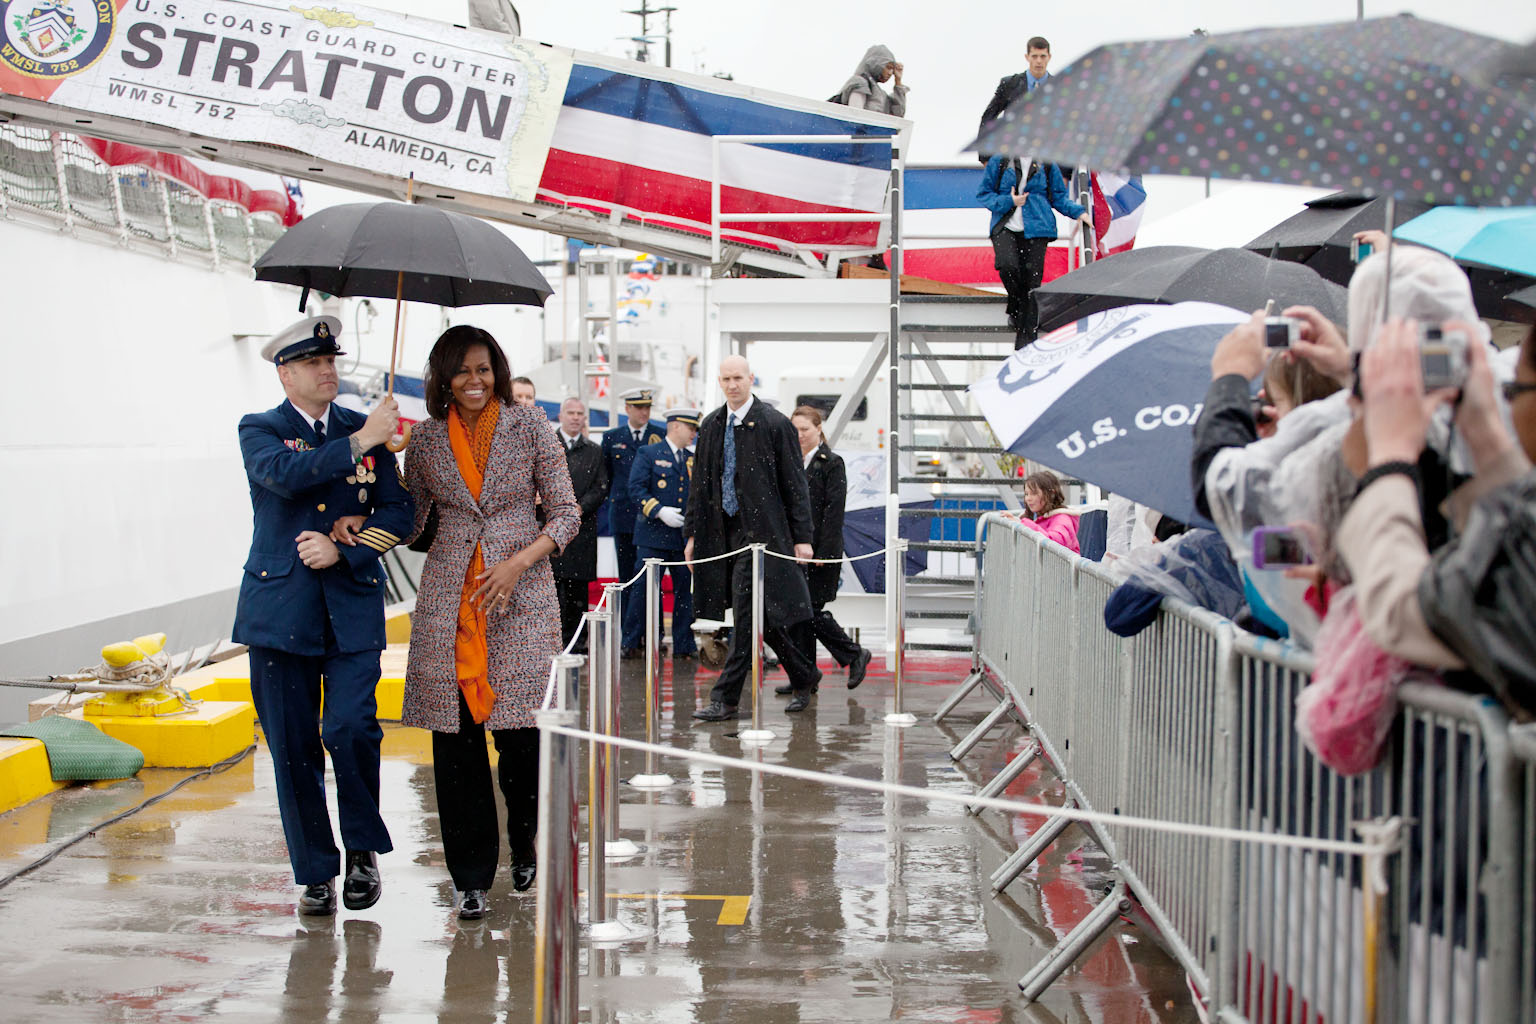 First Lady Michelle Obama arrives at the ceremony to commission the U.S. Coast Guard Cutter Stratton (April 1, 2012)